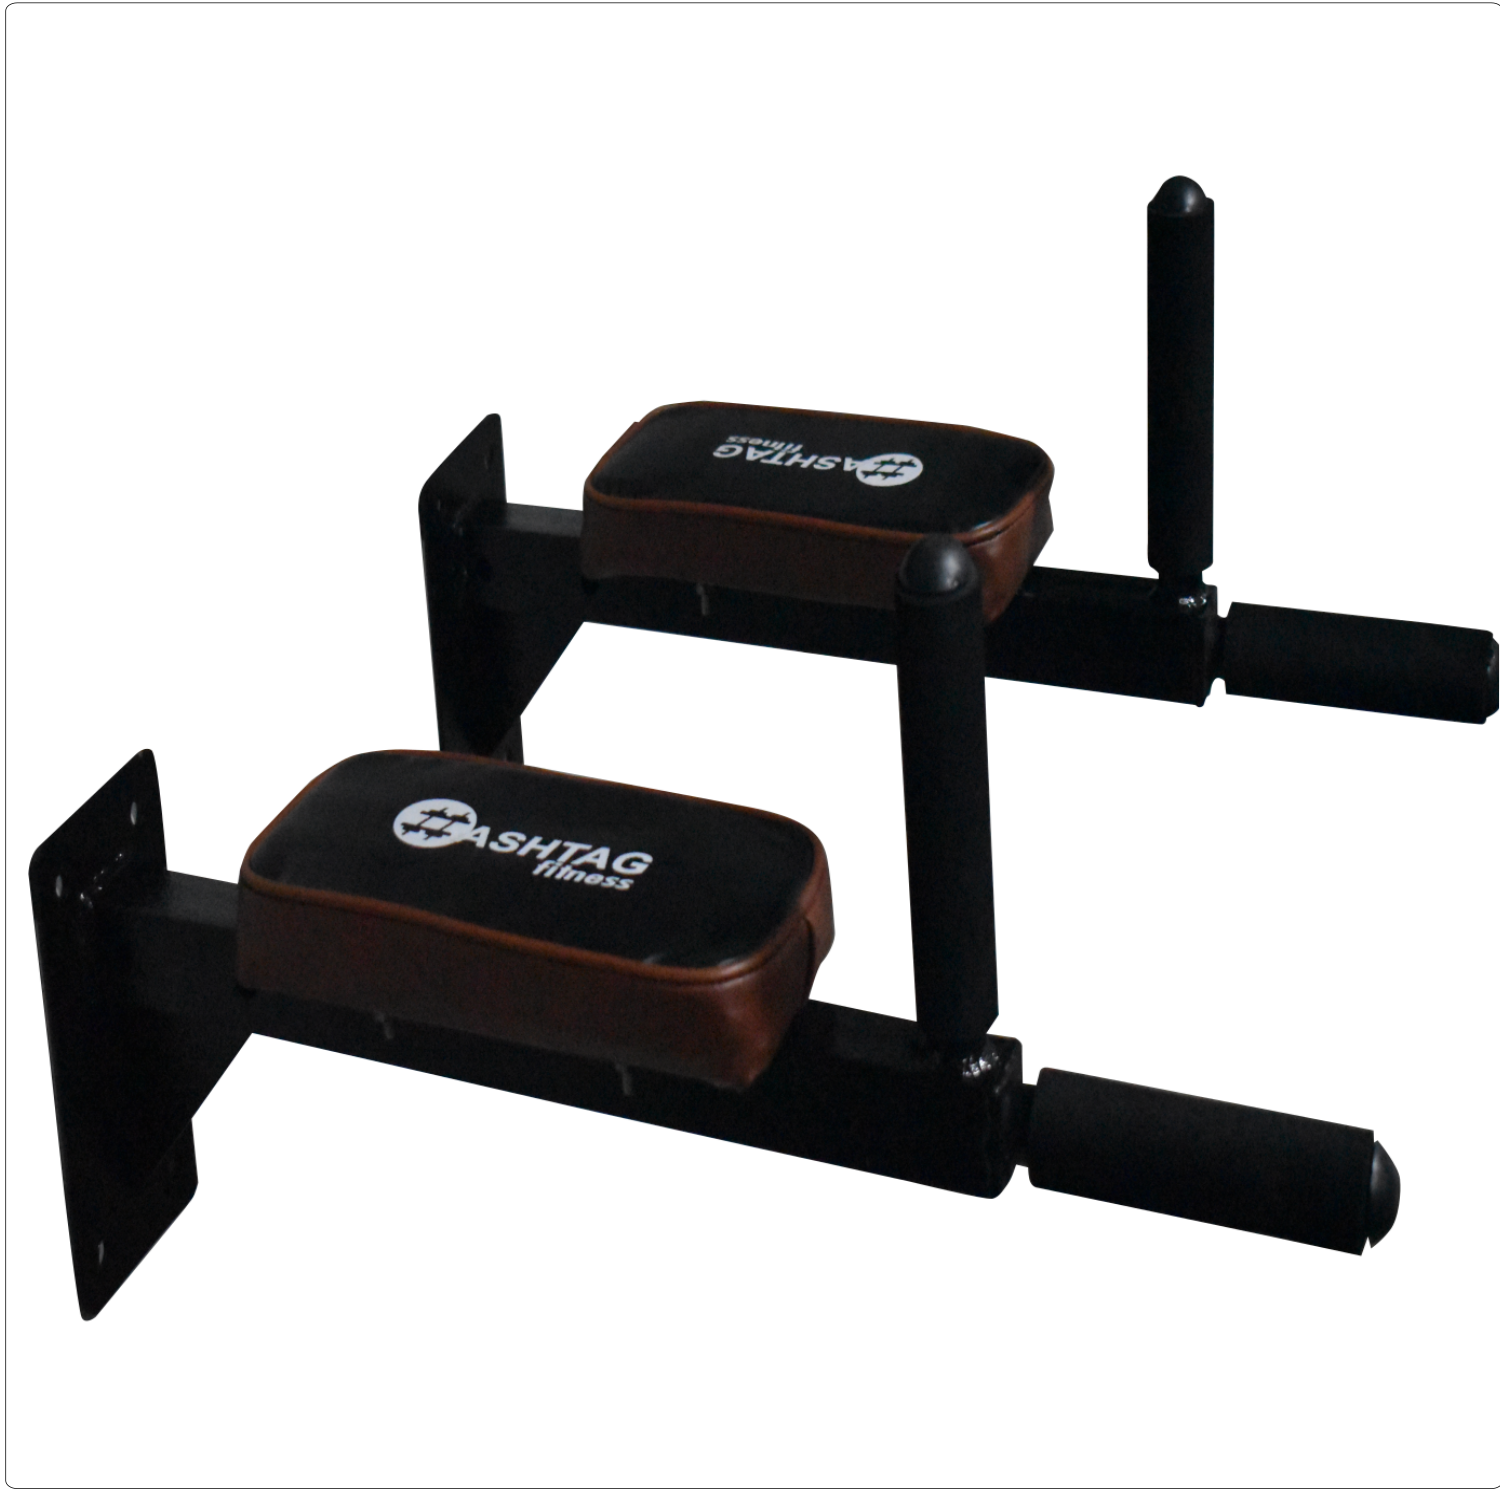 HASHTAG FITNESS home gym dips bar, wall mount dips stand